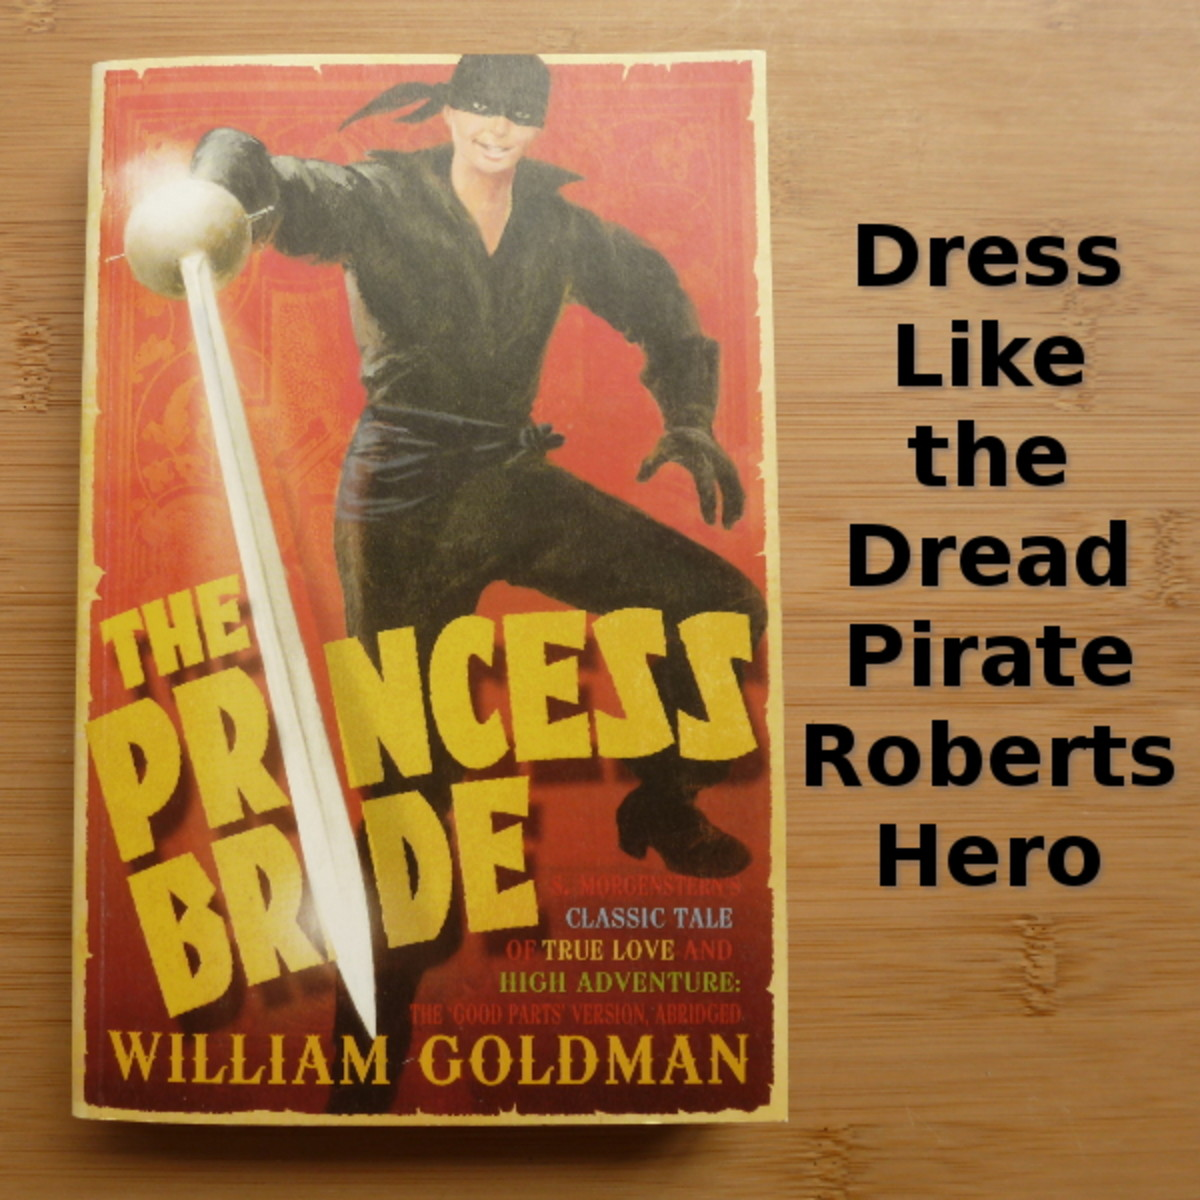 Dress up as Westley, the Dread Pirate Roberts hero for cosplay or Halloween